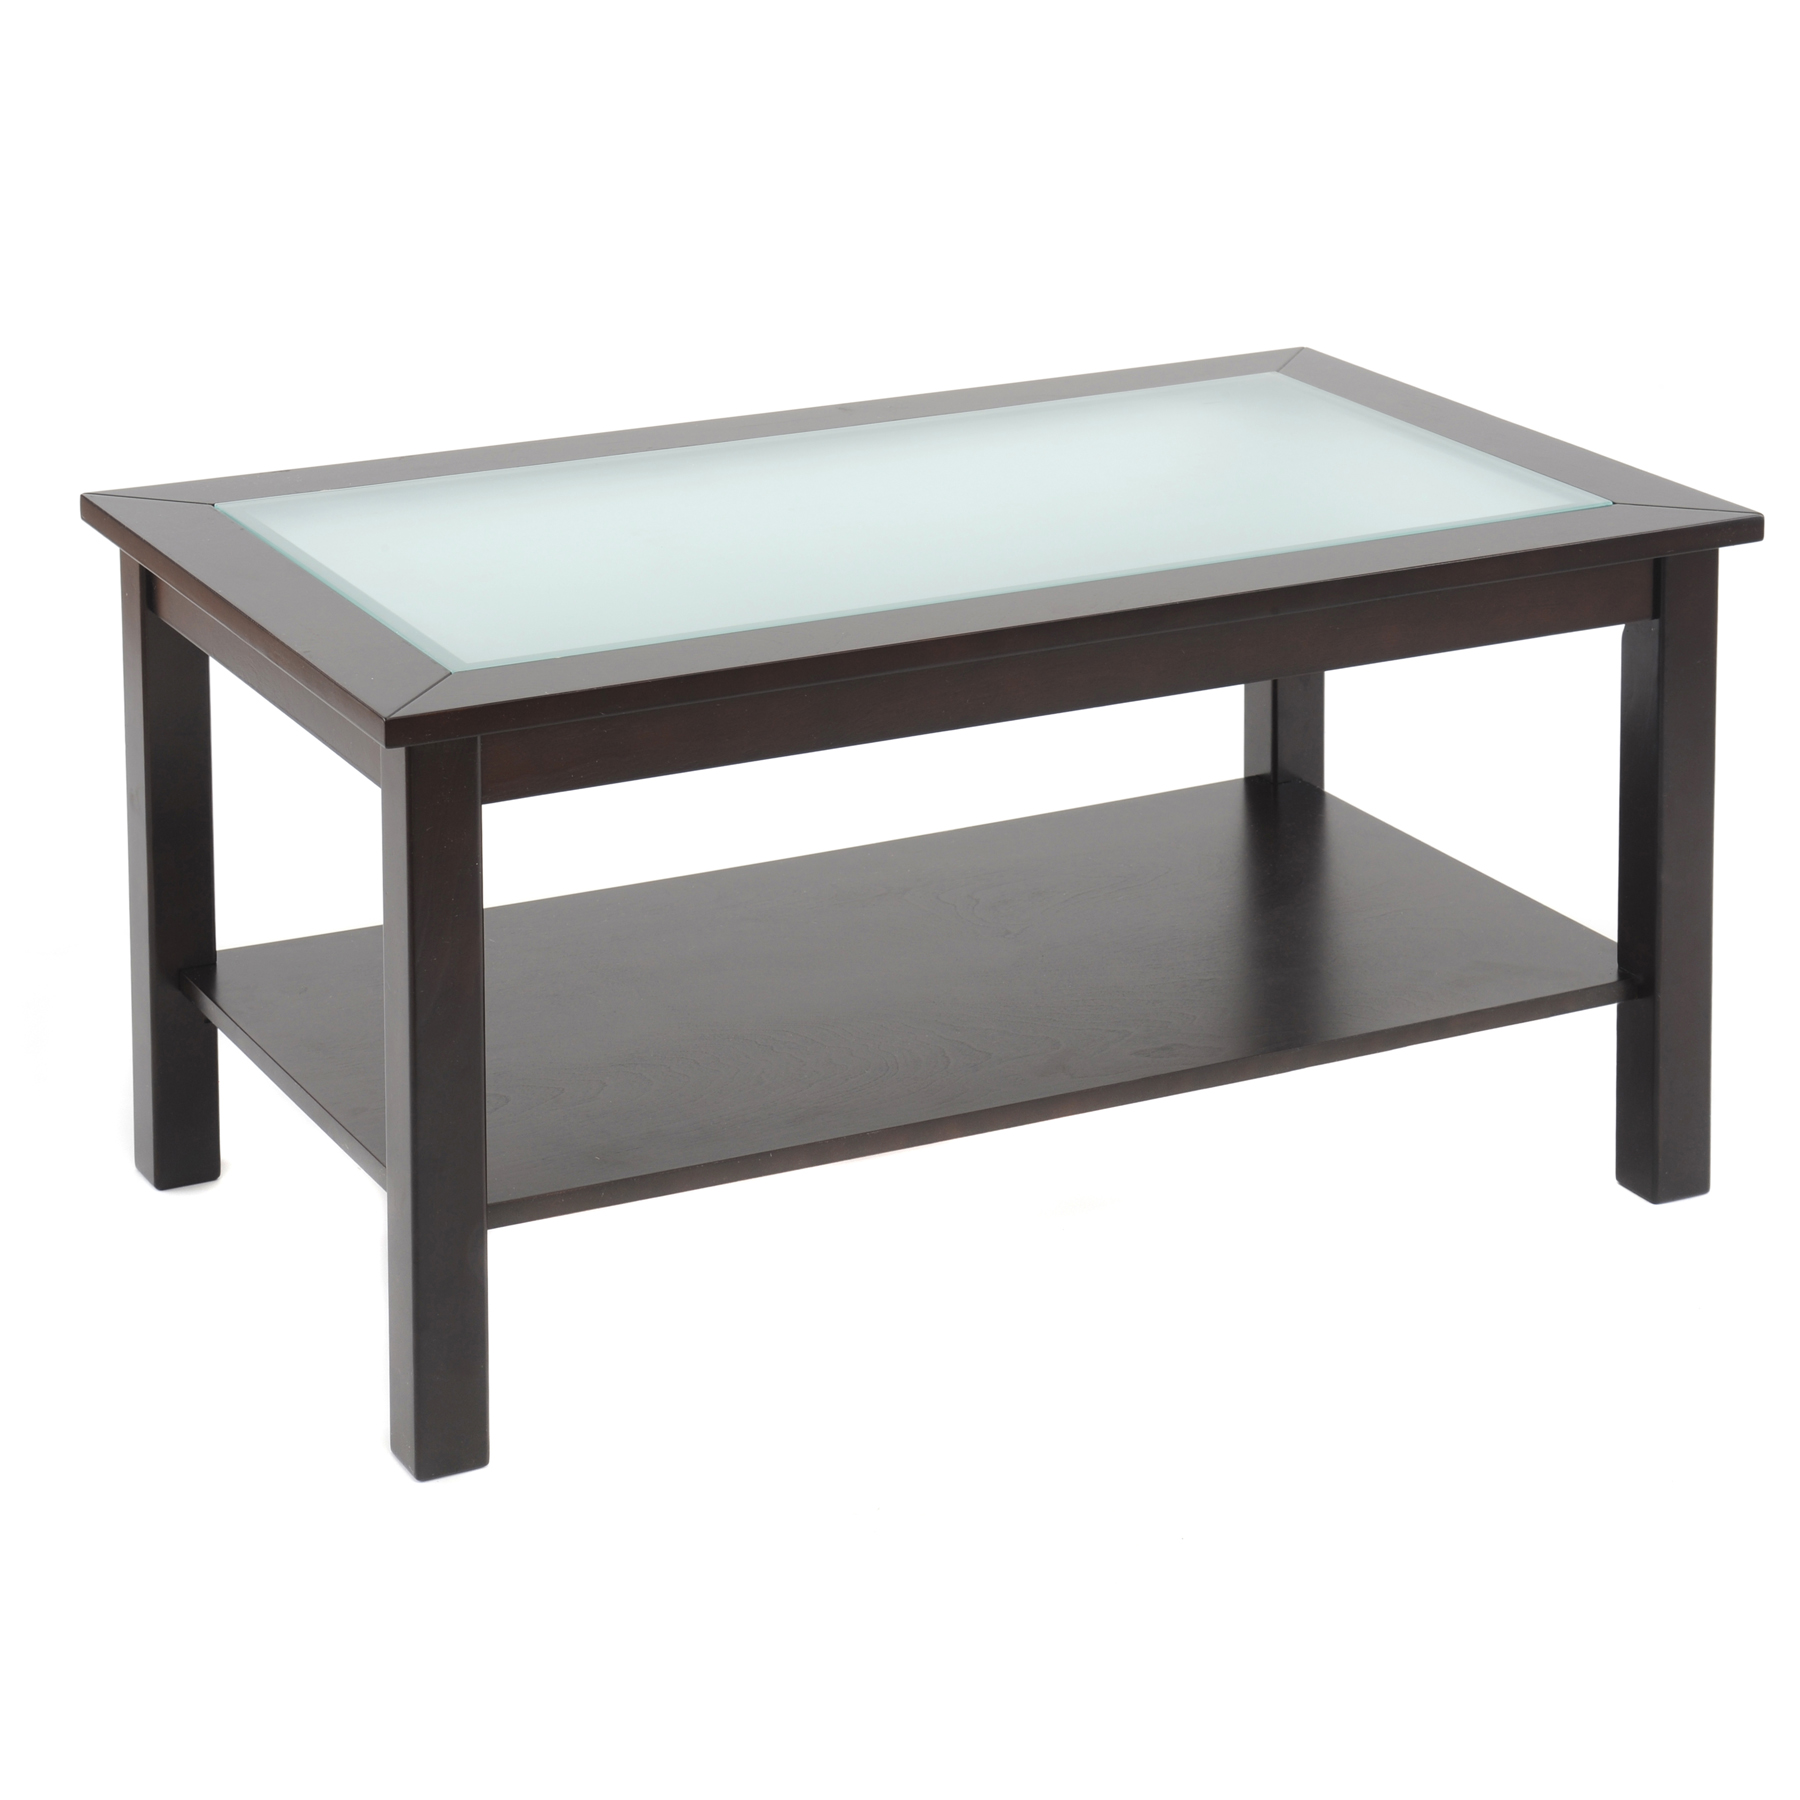 coffee tables design best table replacement glass ideas simple top for end unique wood dog made from chair with shelf and drawers ashley furniture harahan sofa dining wooden legs